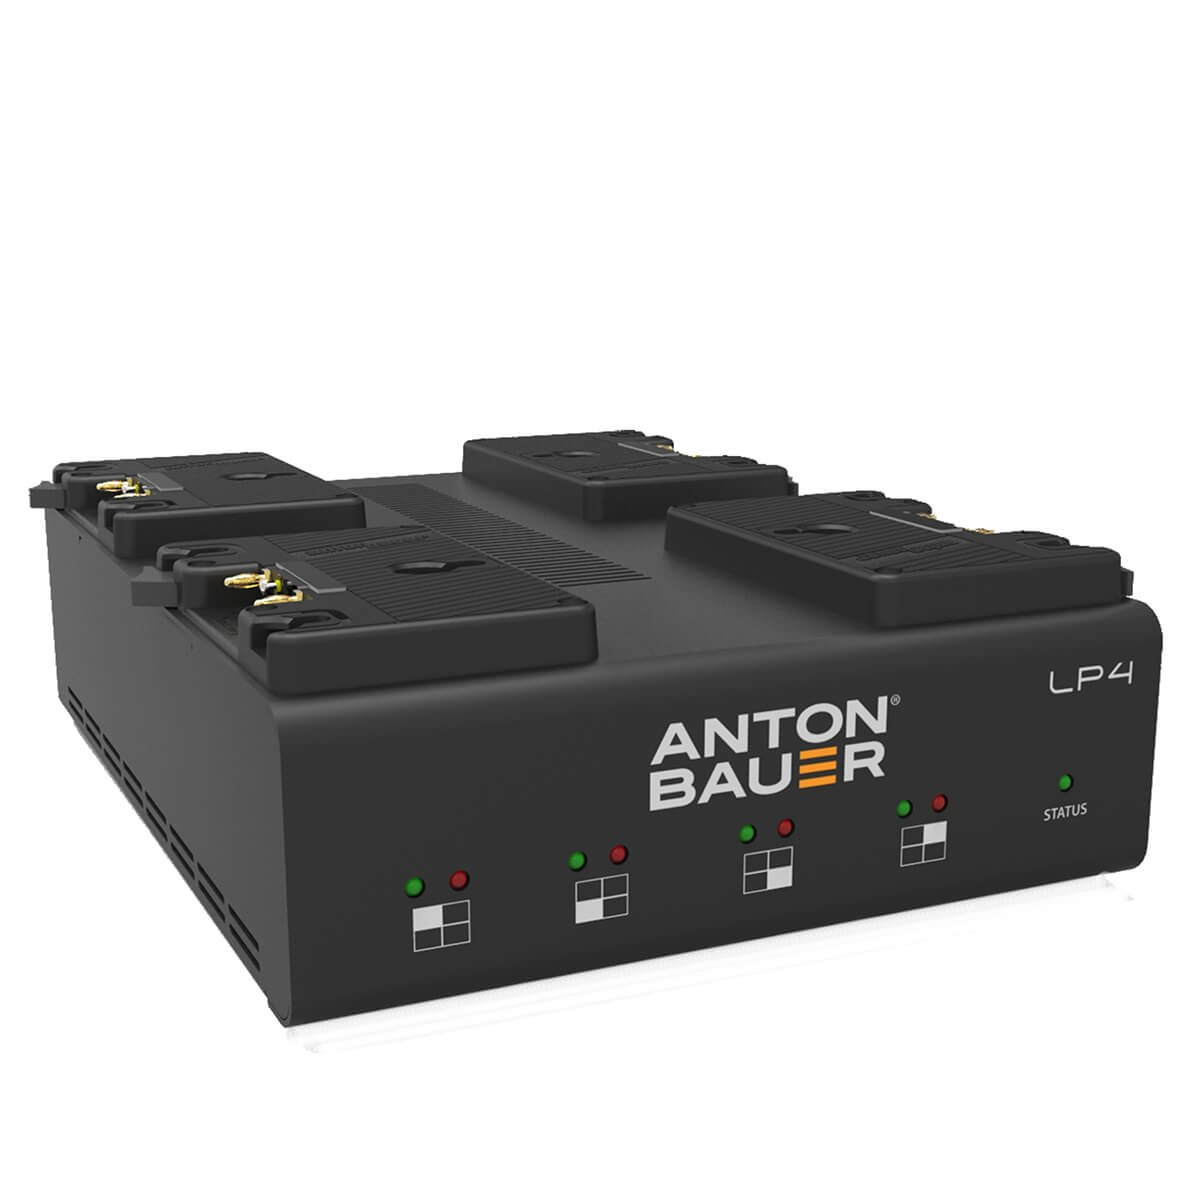 Anton Bauer lp4低プロファイルクアッドゴールドマウントpriority-based同時4-positionバッテリーPowercharger with LED表示   B00WNVO0S2